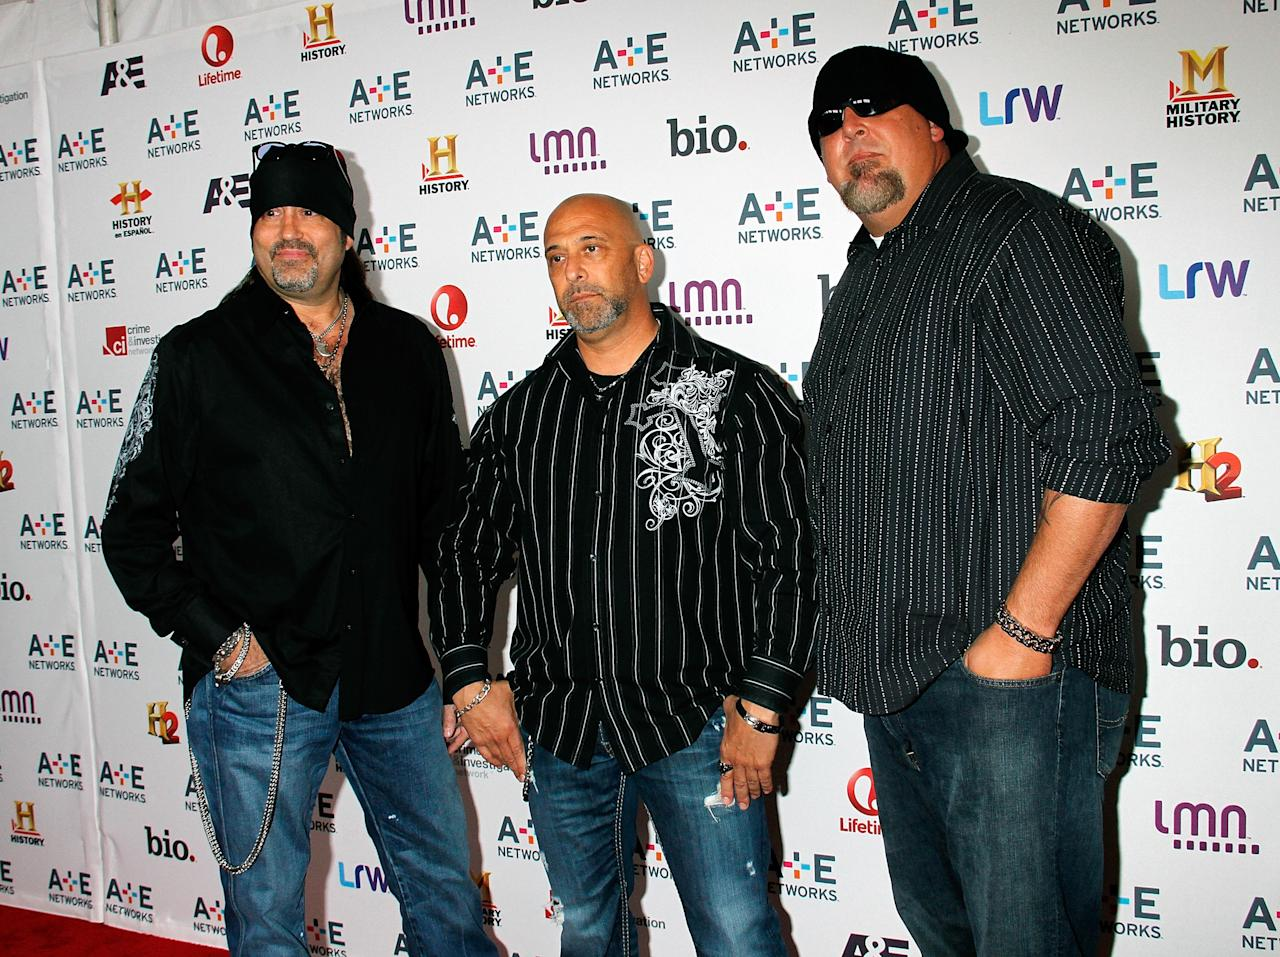 NEW YORK, NY - MAY 08: Danny, Kevin and Scott of Counting Cars attend A&E Networks 2013 Upfront at Lincoln Center on May 8, 2013 in New York City.  (Photo by Laura Cavanaugh/Getty Images)